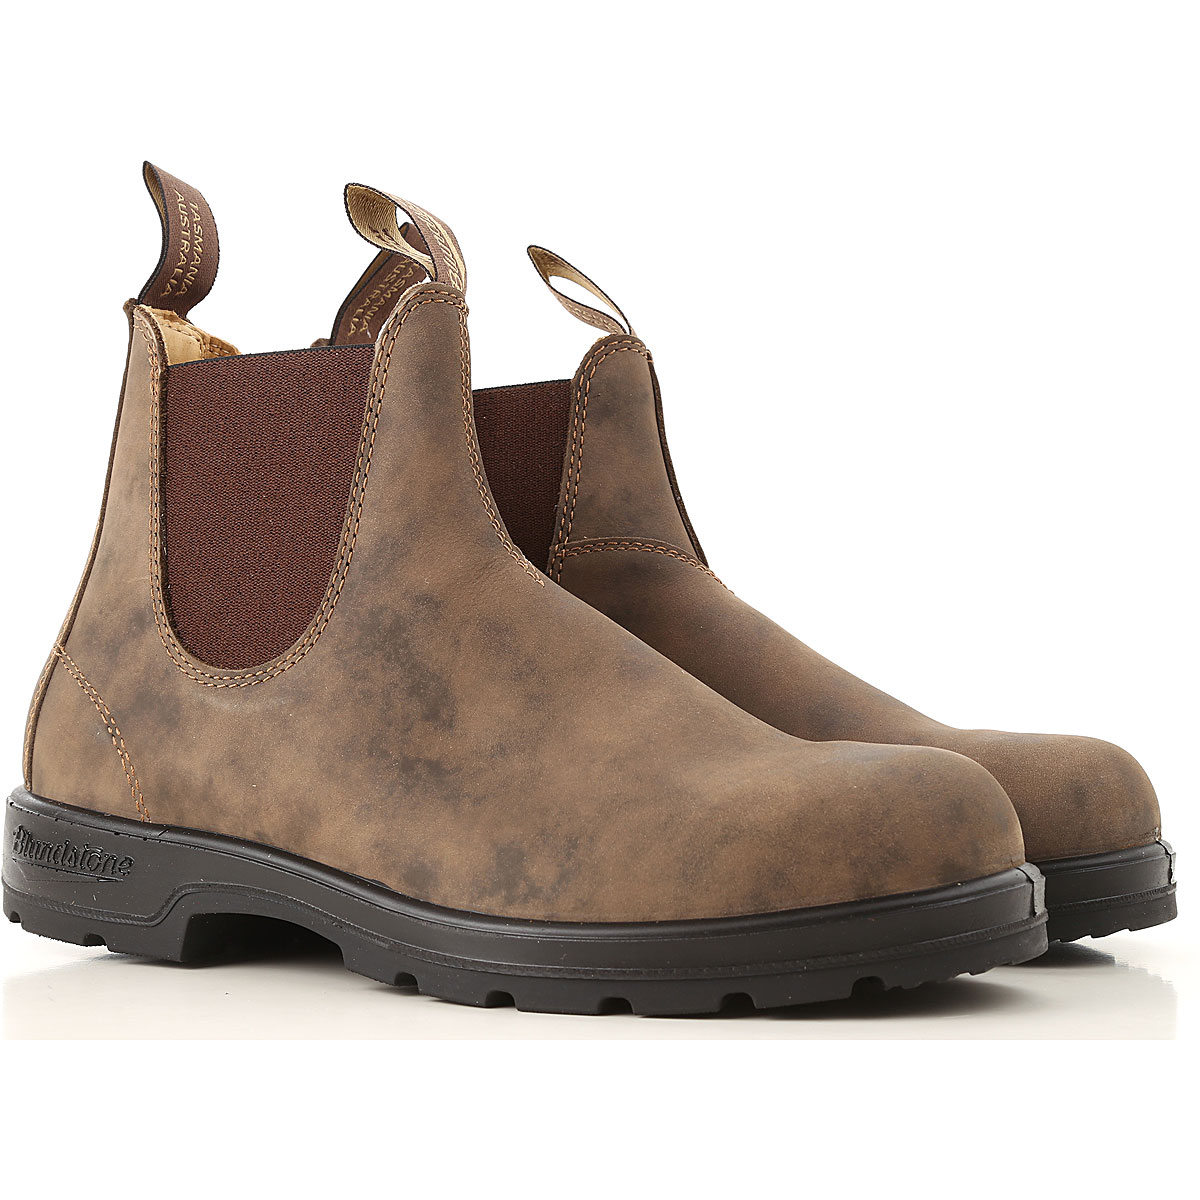 Image of Blundstone Chelsea Boots for Men, Brown, Leather, 2017, 10 10.5 7.5 8 9